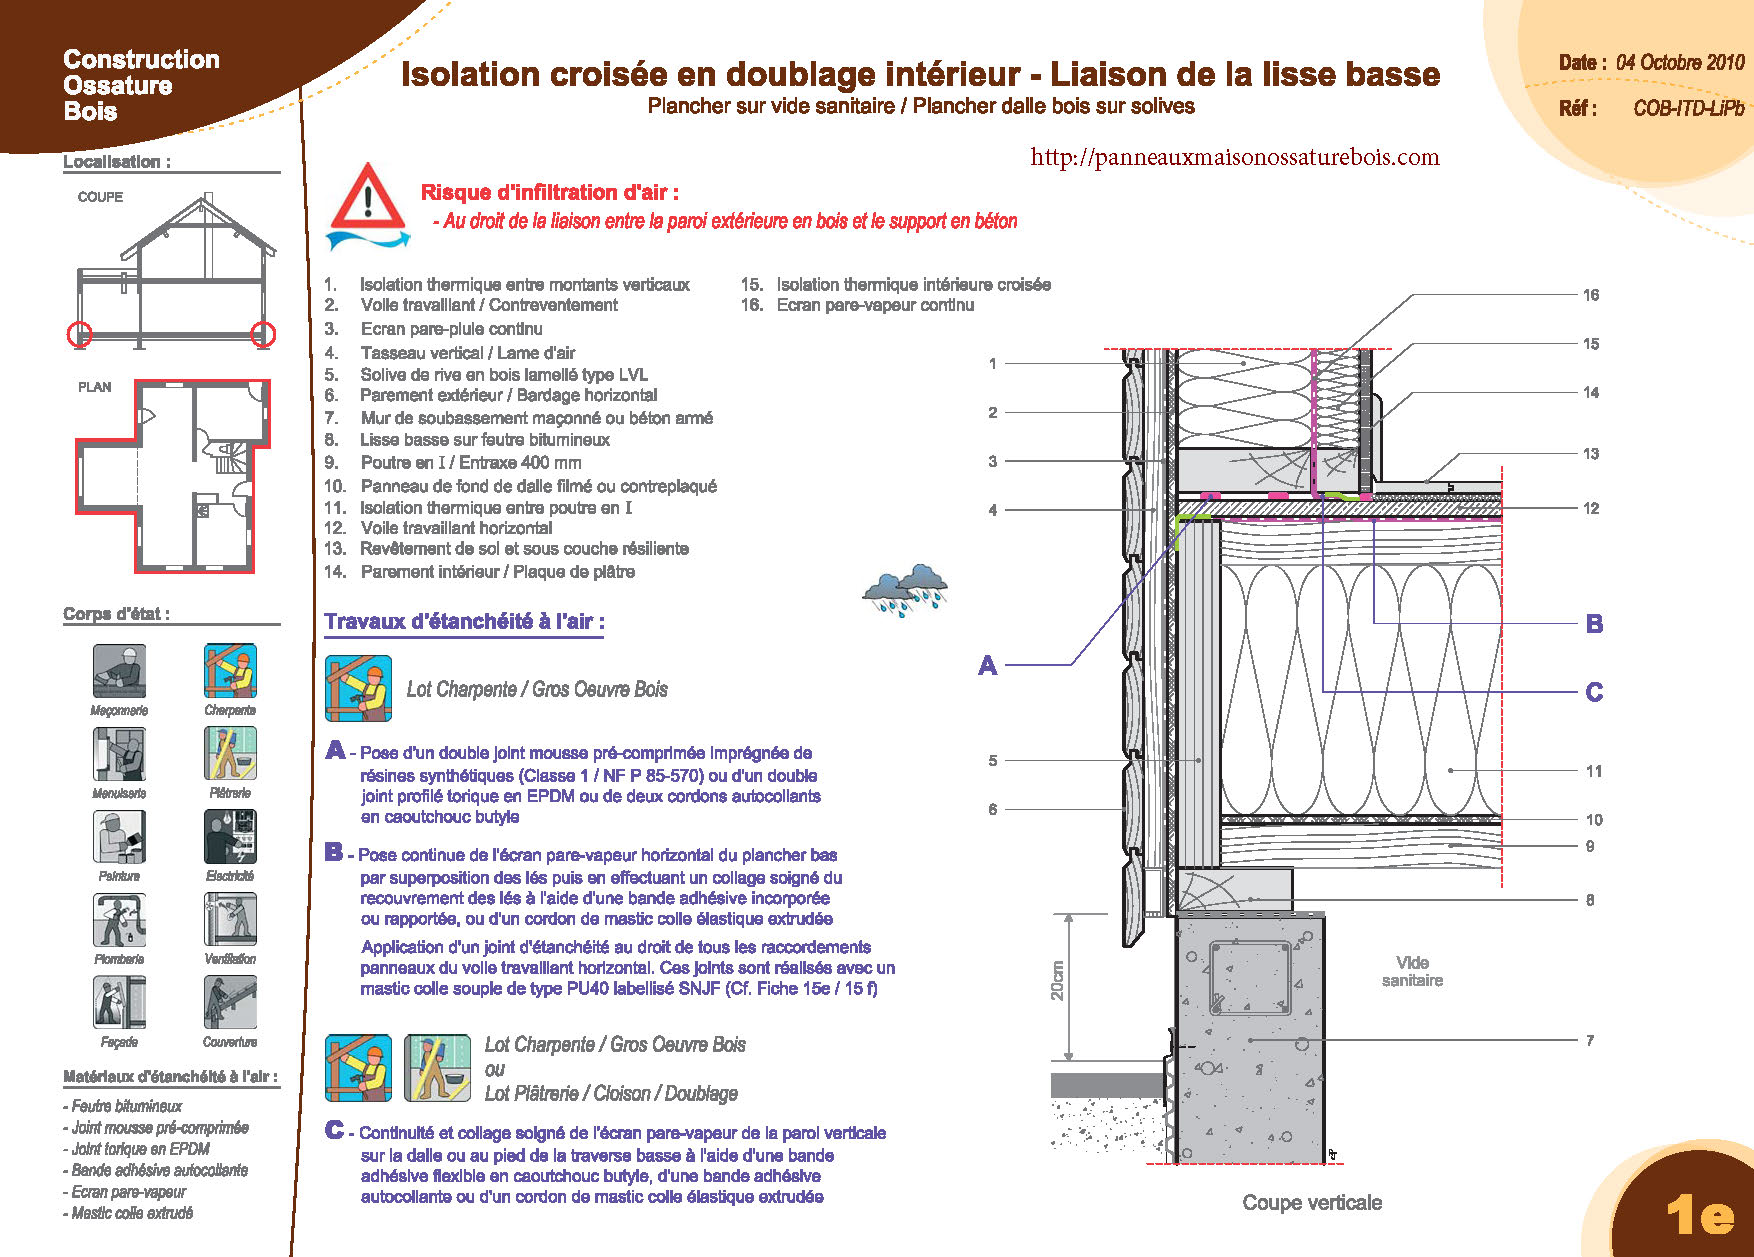 coupes construtions ossature bois complets_Page_10